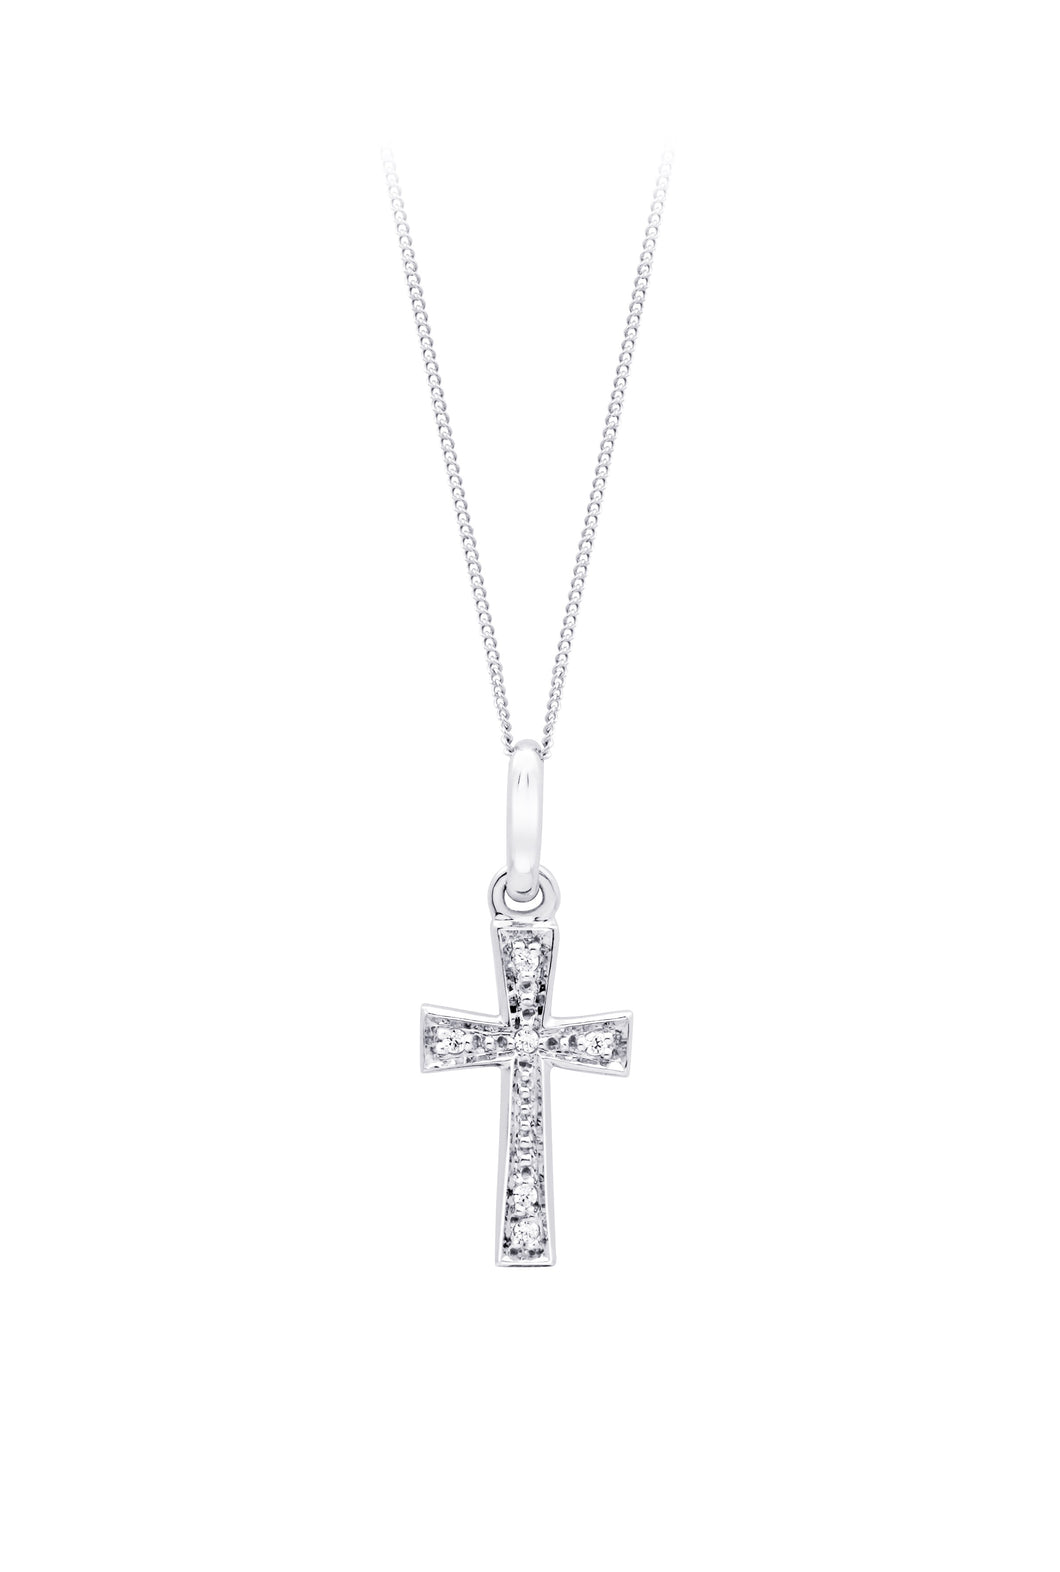 Diamond Cross Pendant  10k White Gold  6=0.03cttw